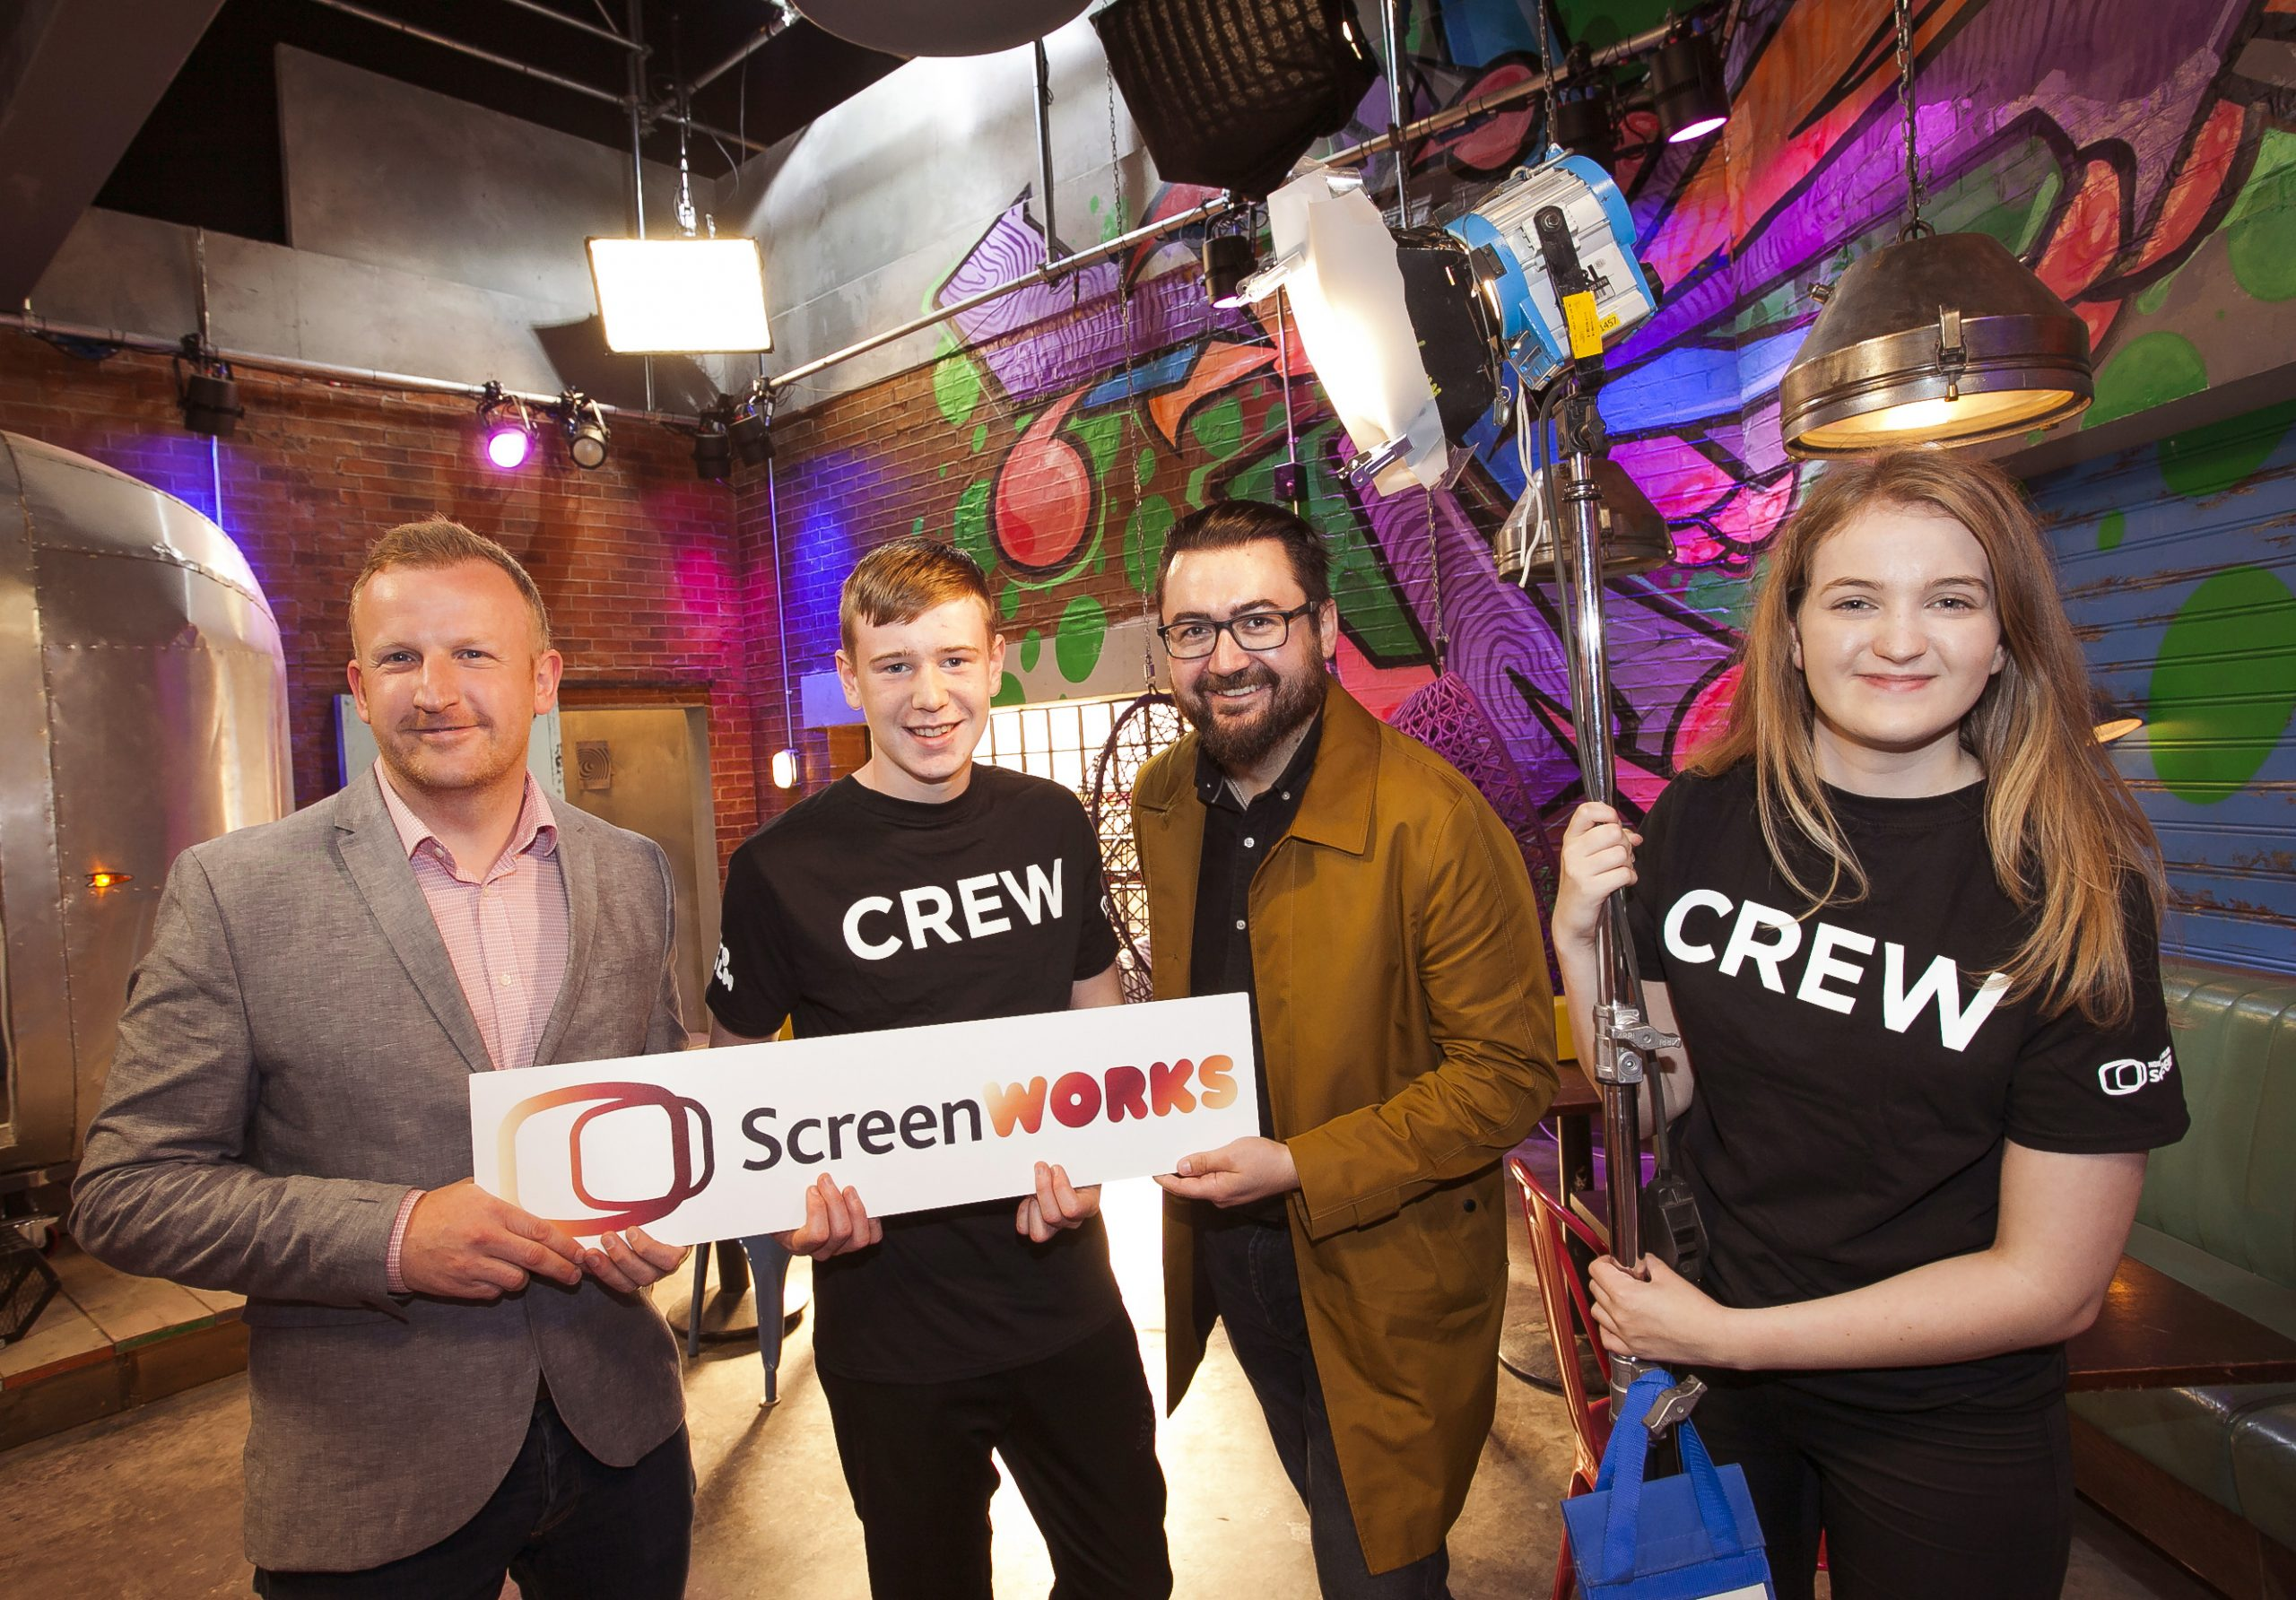 450 young people to be given training in NI screen industries